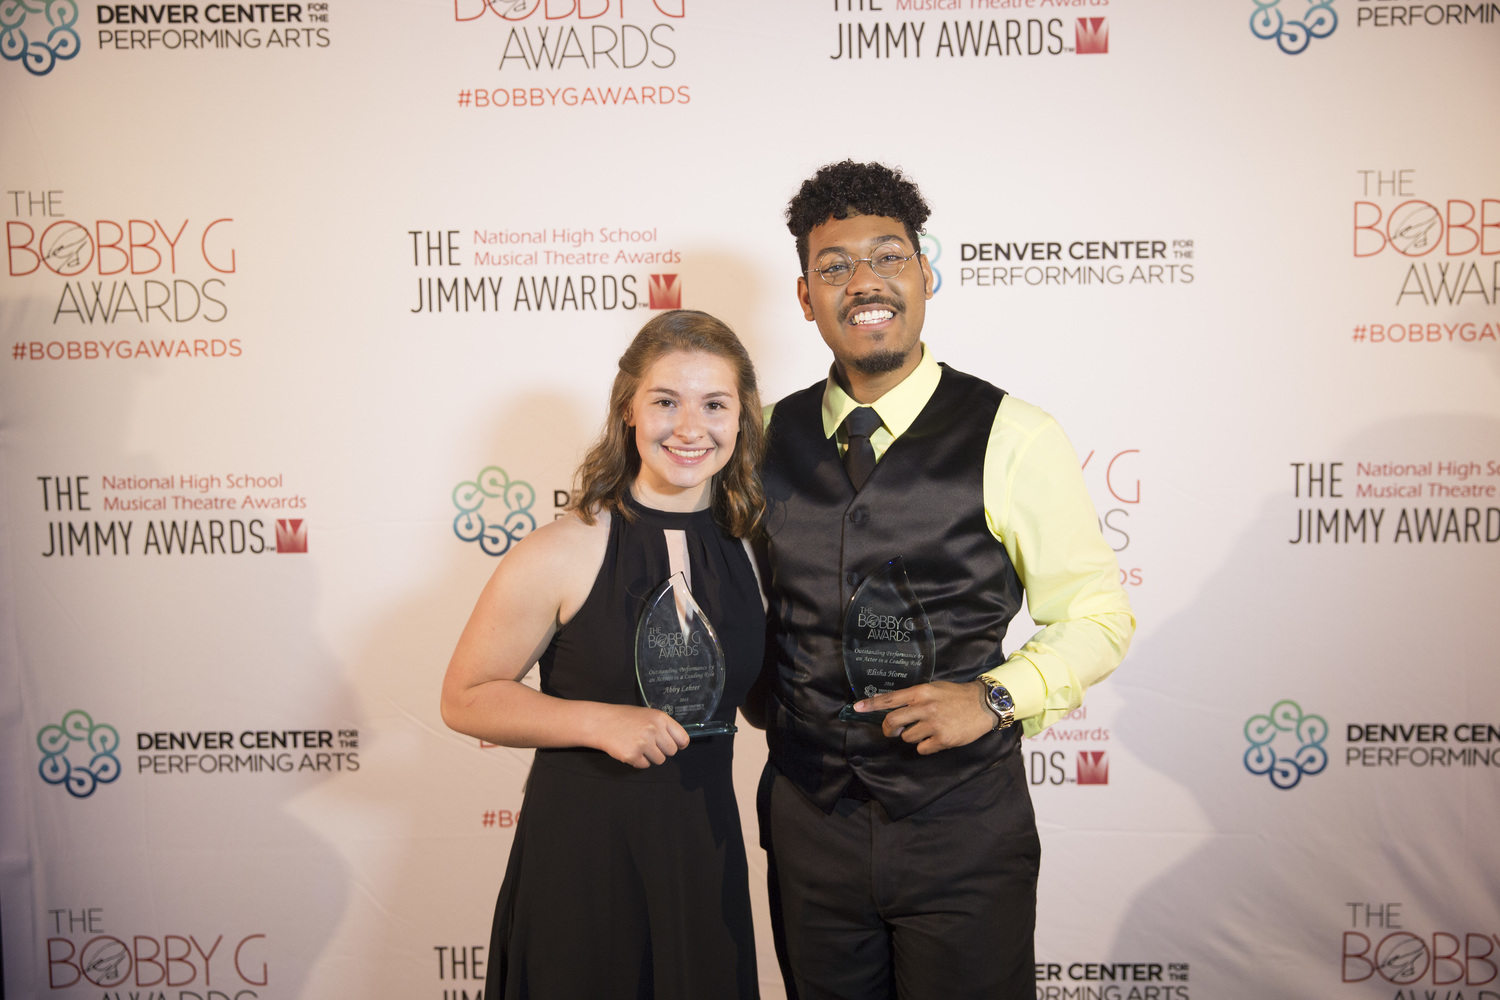 BWW Interview: Q&A with Bobby G Award Winners Abby Lehrer and Elisha Horne